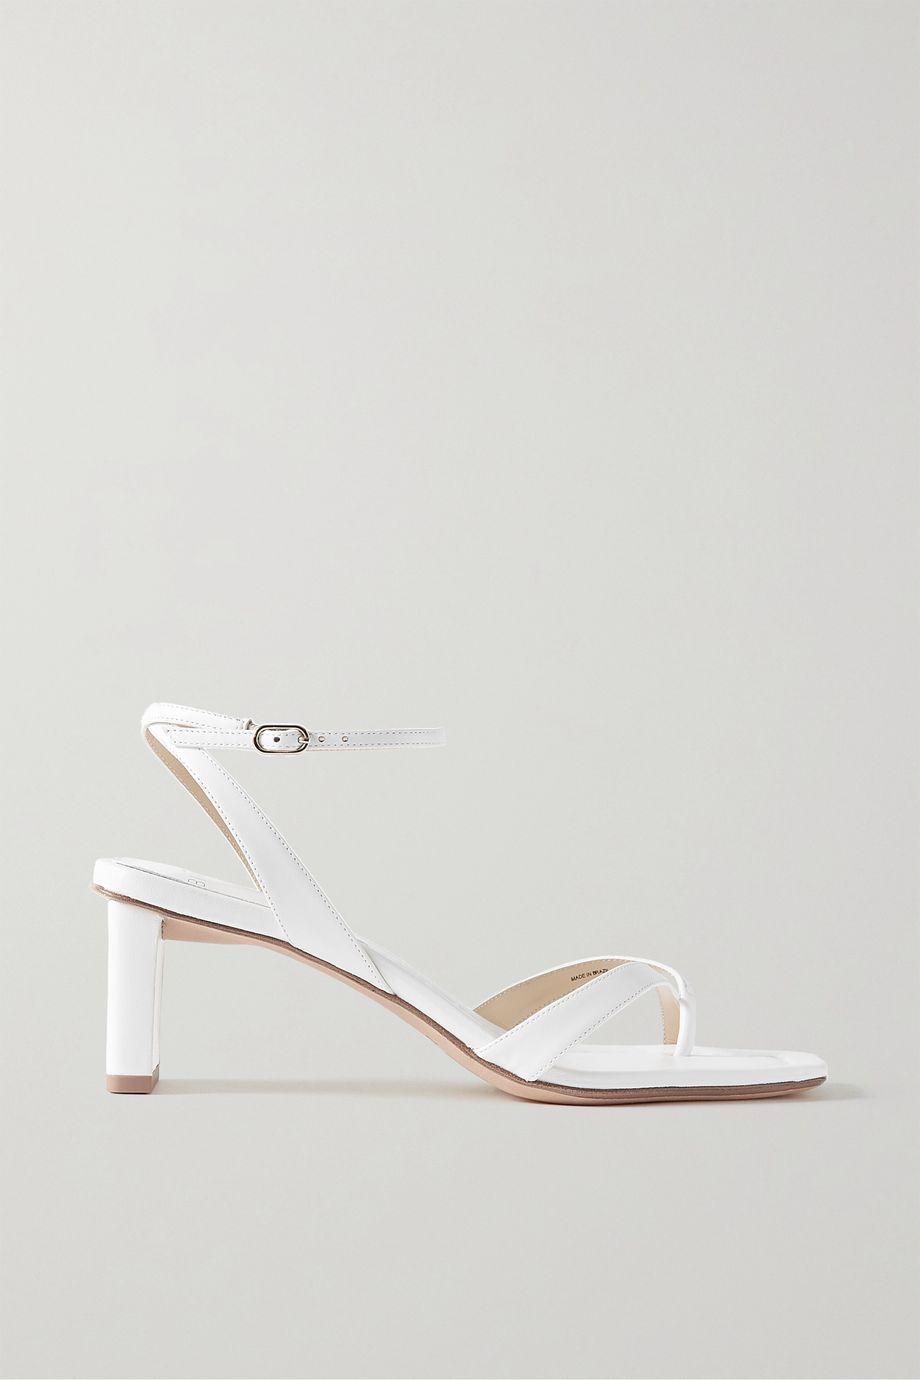 Alexandre Birman Nelly leather sandals